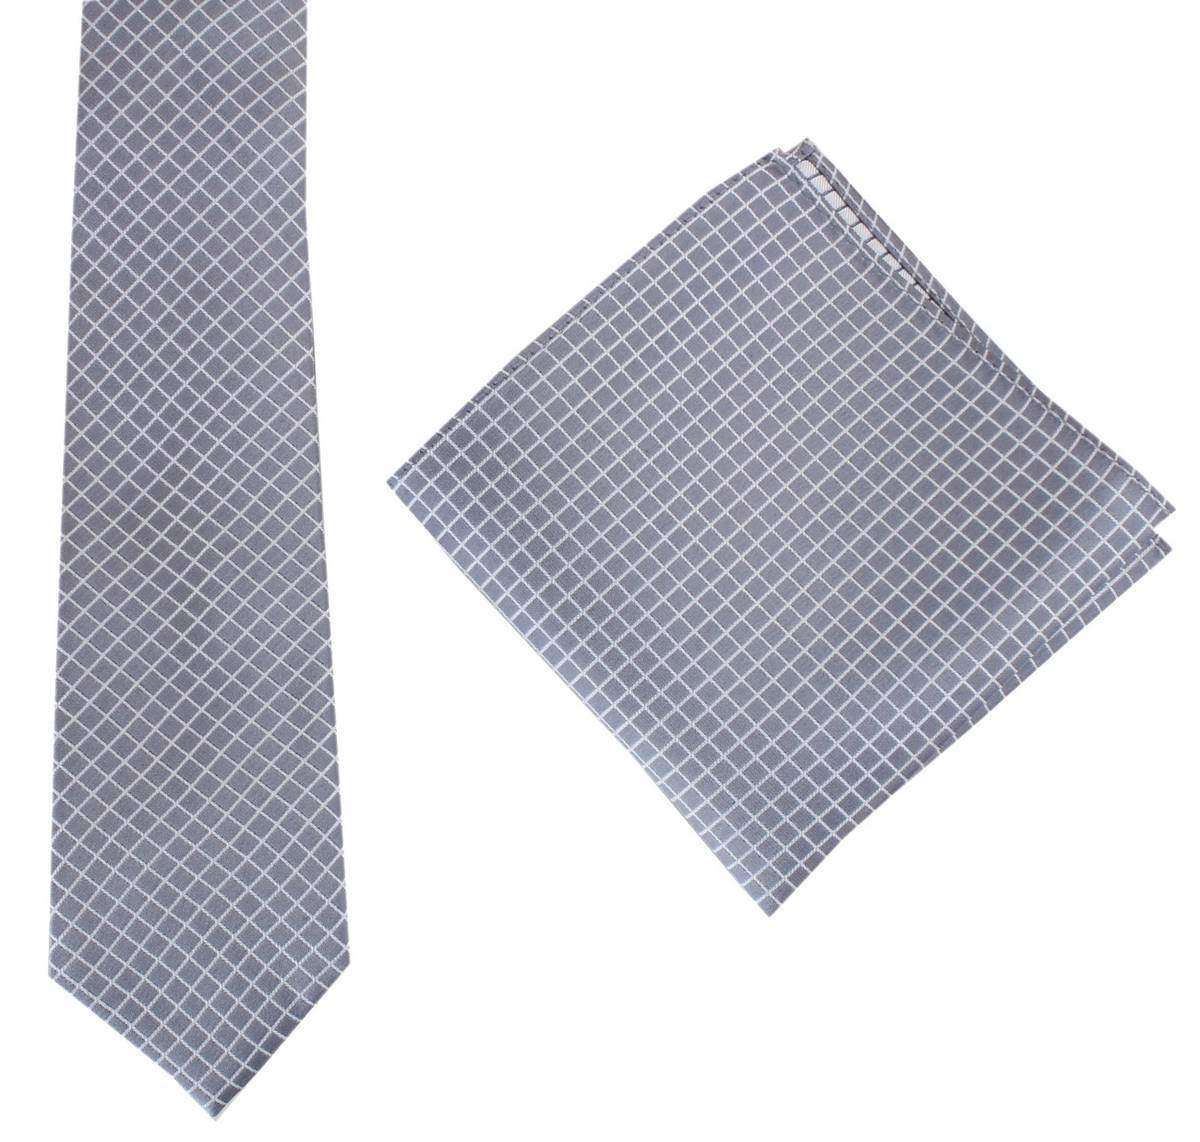 ae3e9881be24 Knightsbridge Neckwear Mens Check Tie and Pocket Square set - Grey ...